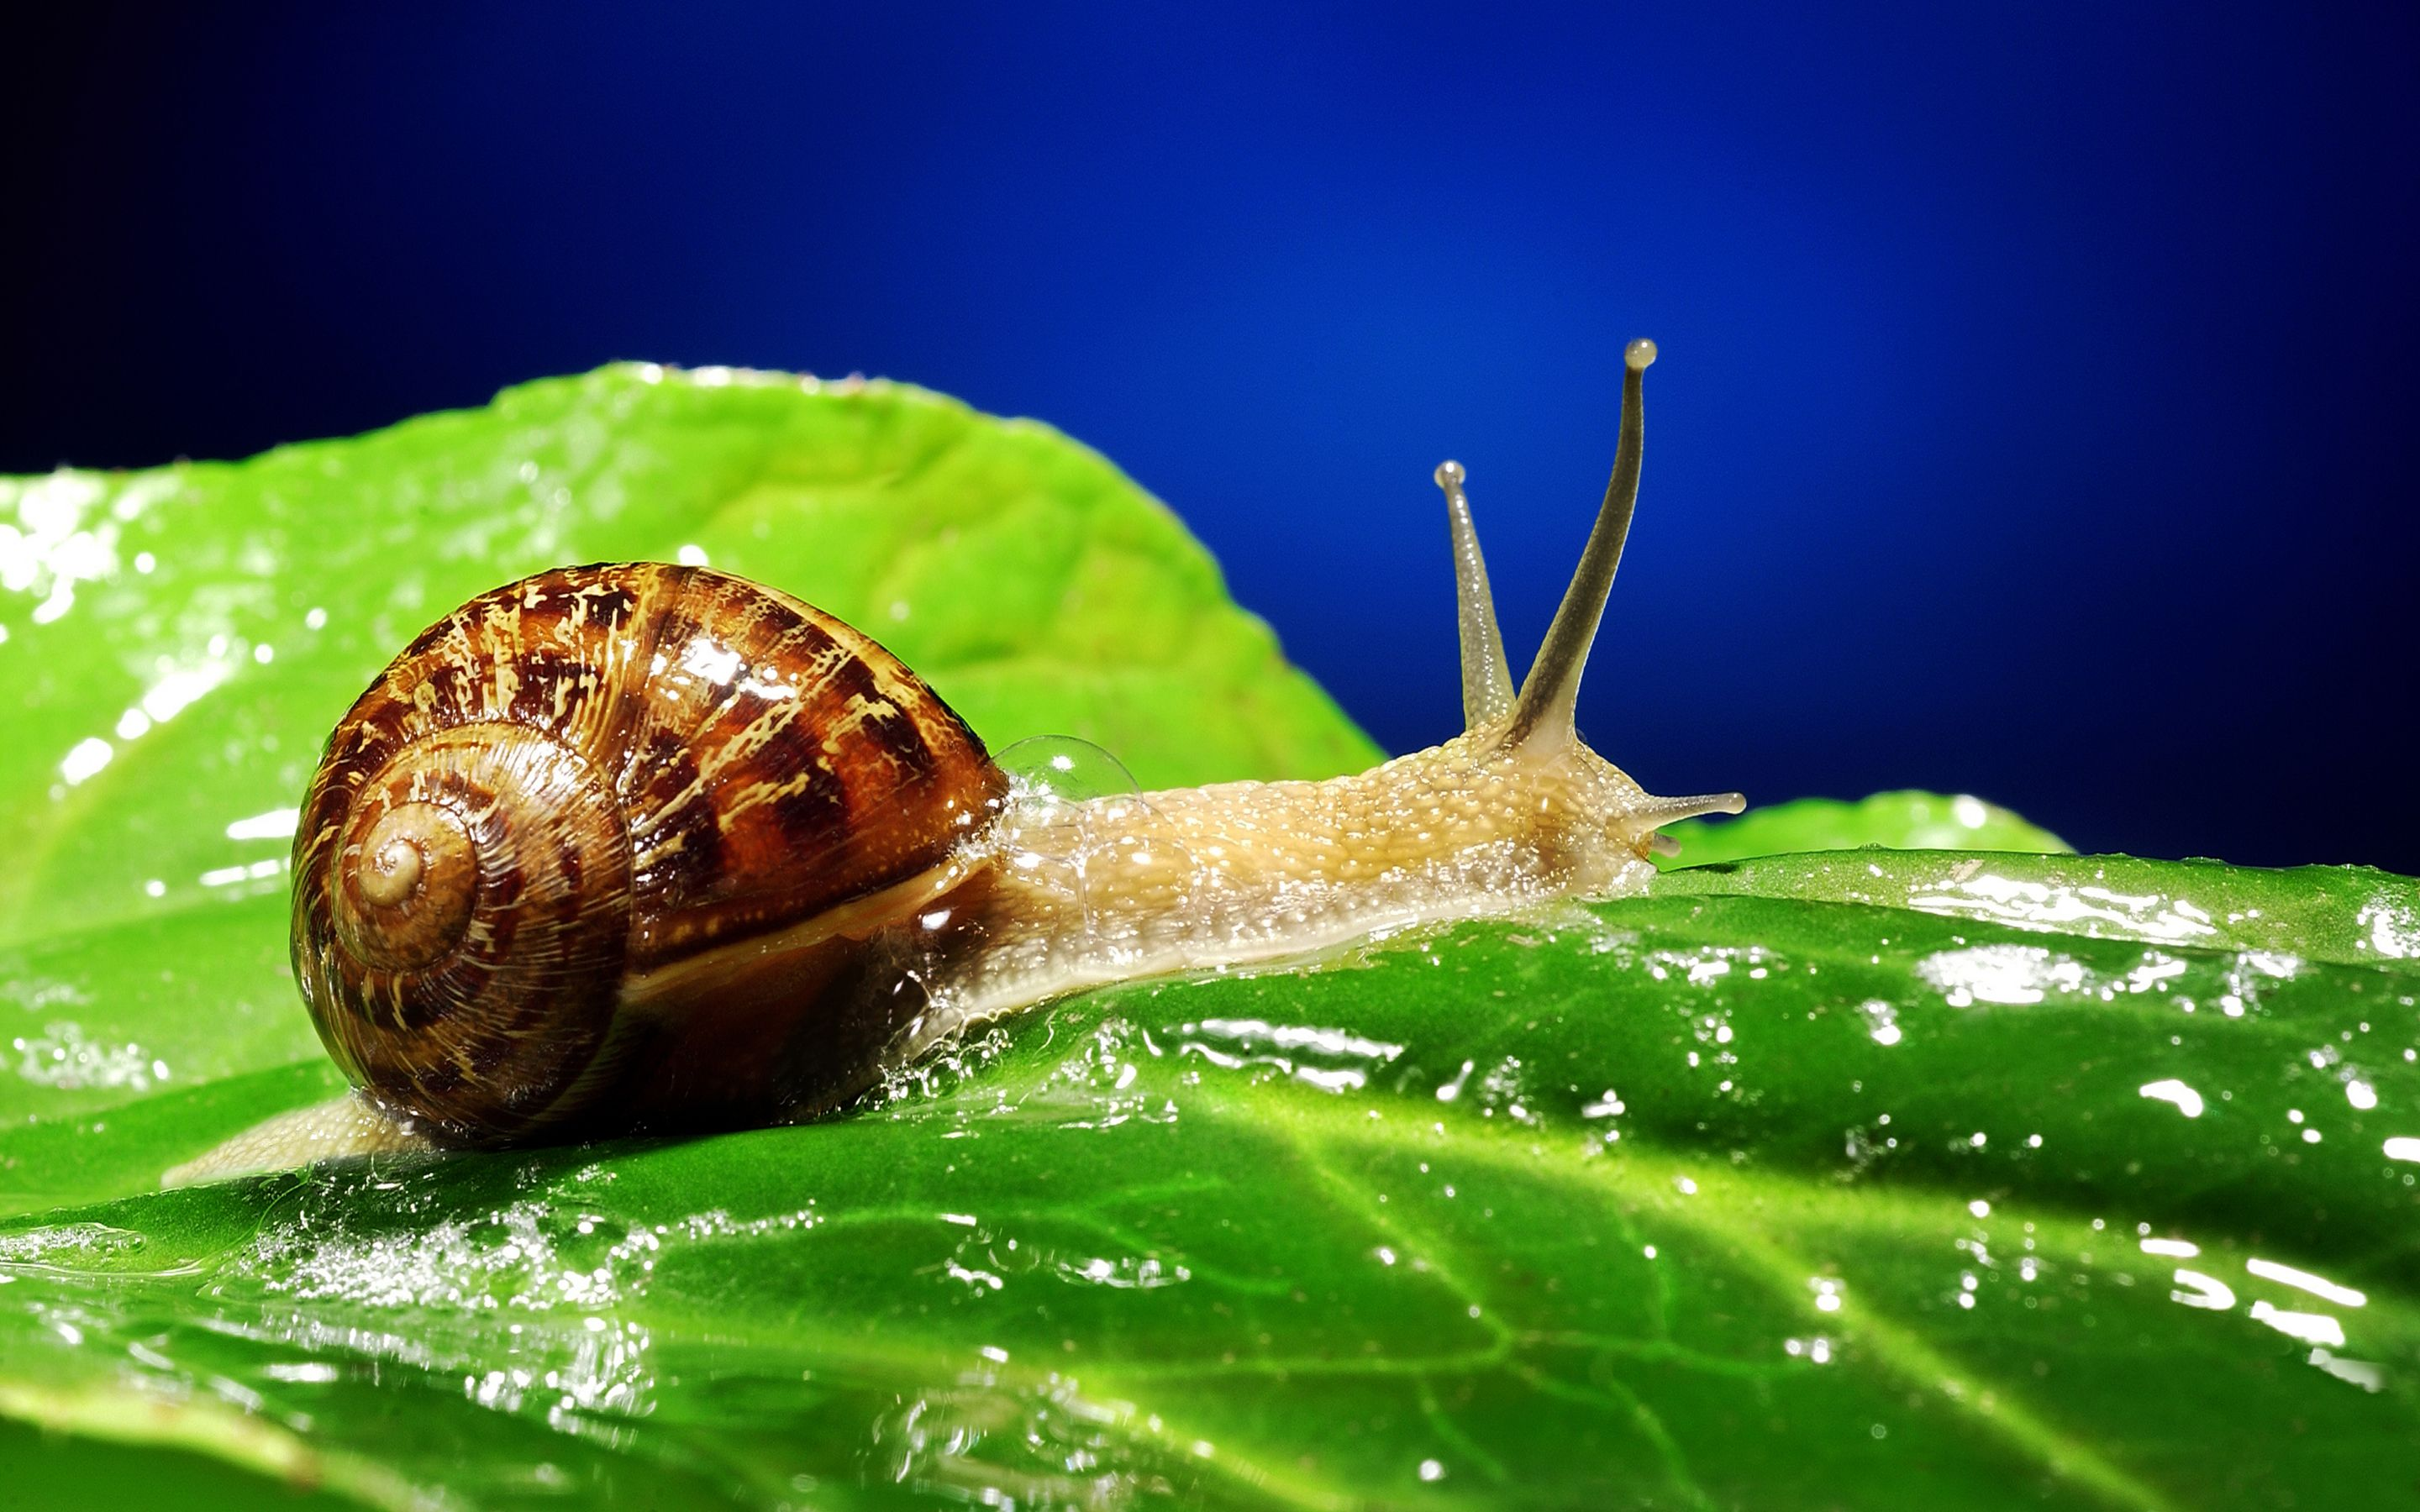 Snail Full HD Wallpapers and Backgrounds Image